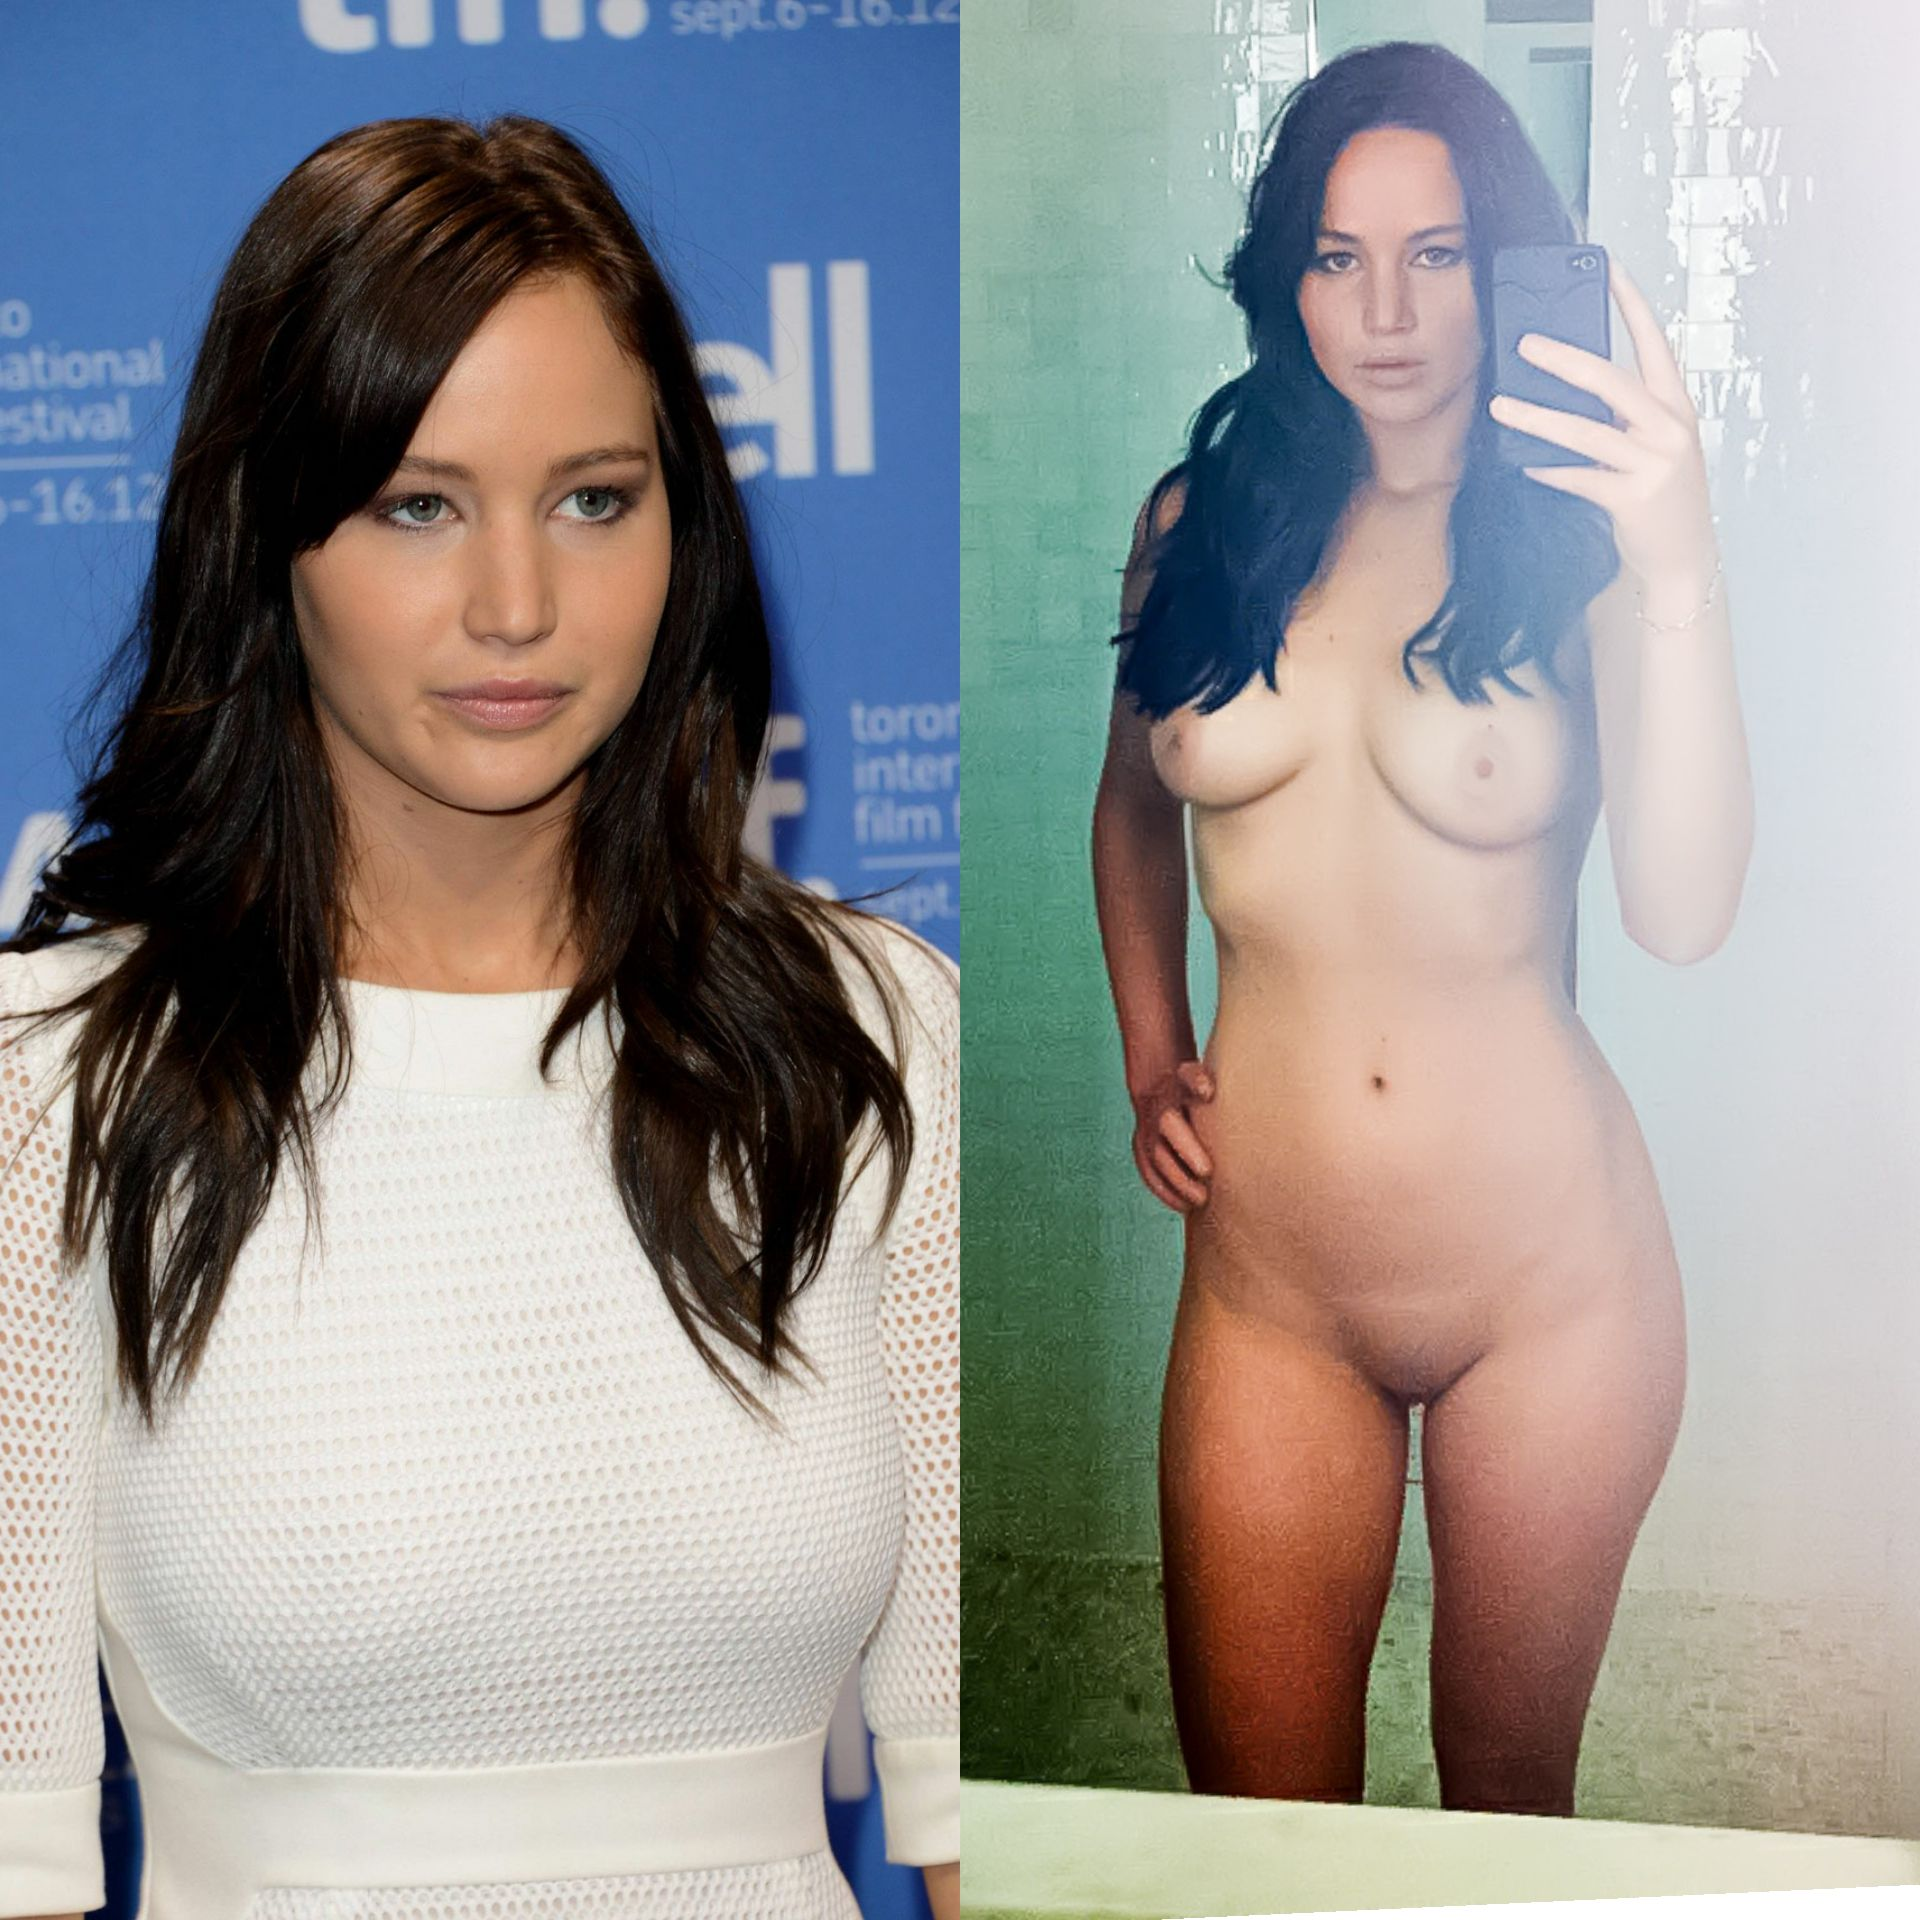 The most naked celebrity snapchat pics of all time